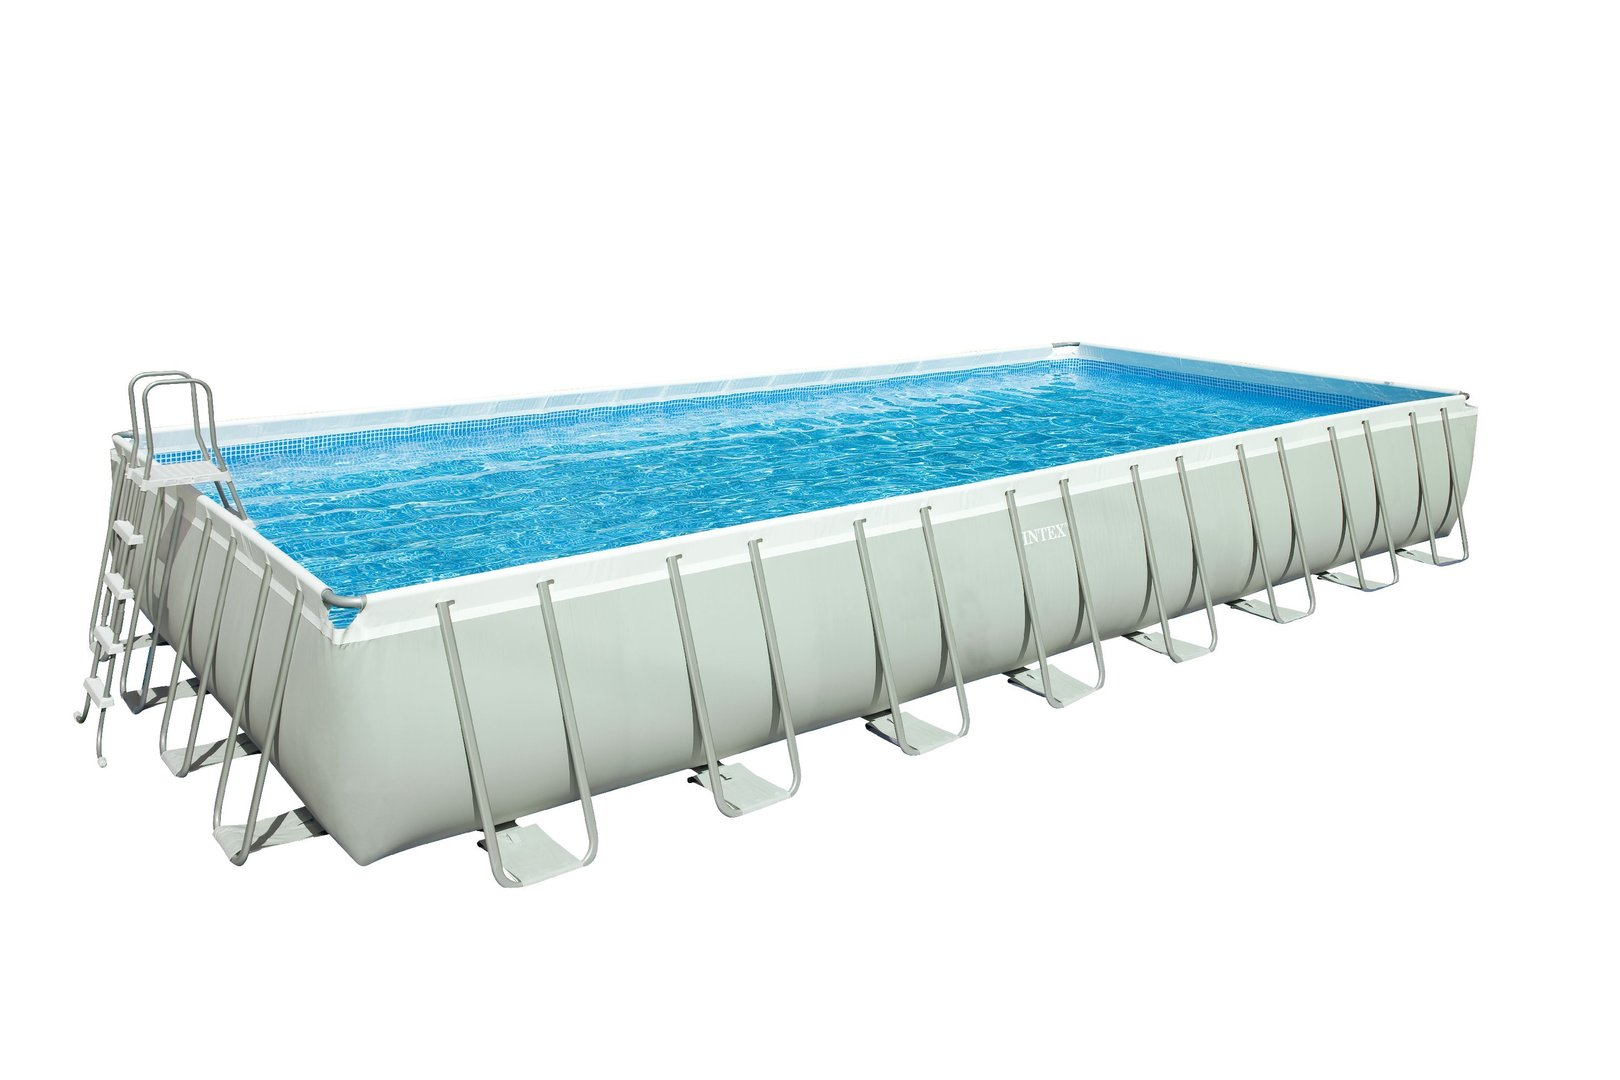 Bodensauger Intex Pool Anleitung Quotultra Quadra Quot Frame Pool Set Von Intex Bei Bavchem